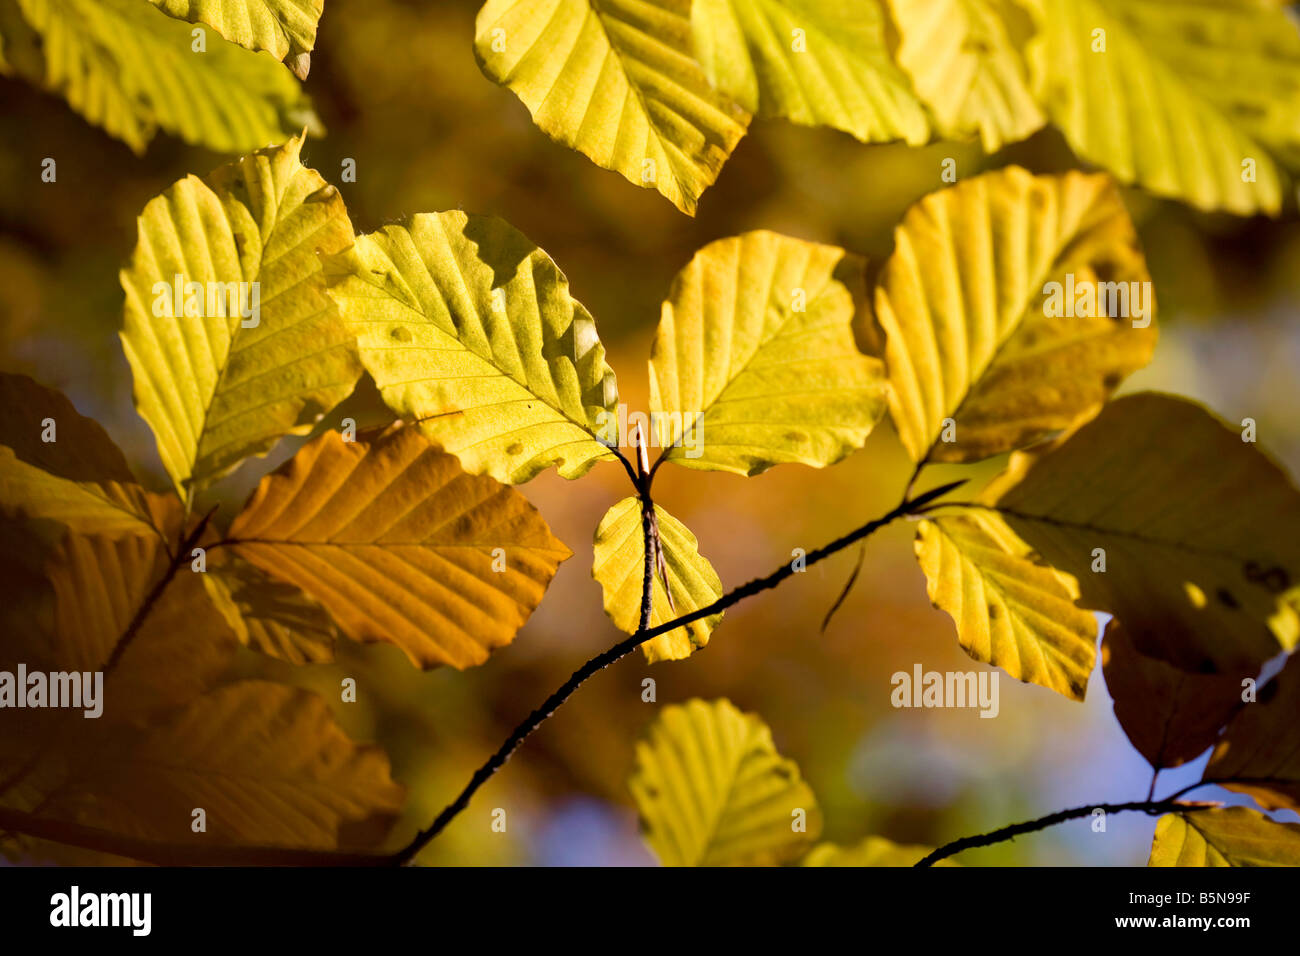 Branches of golden Beech leaves against a blue sky in Autumn - Stock Image